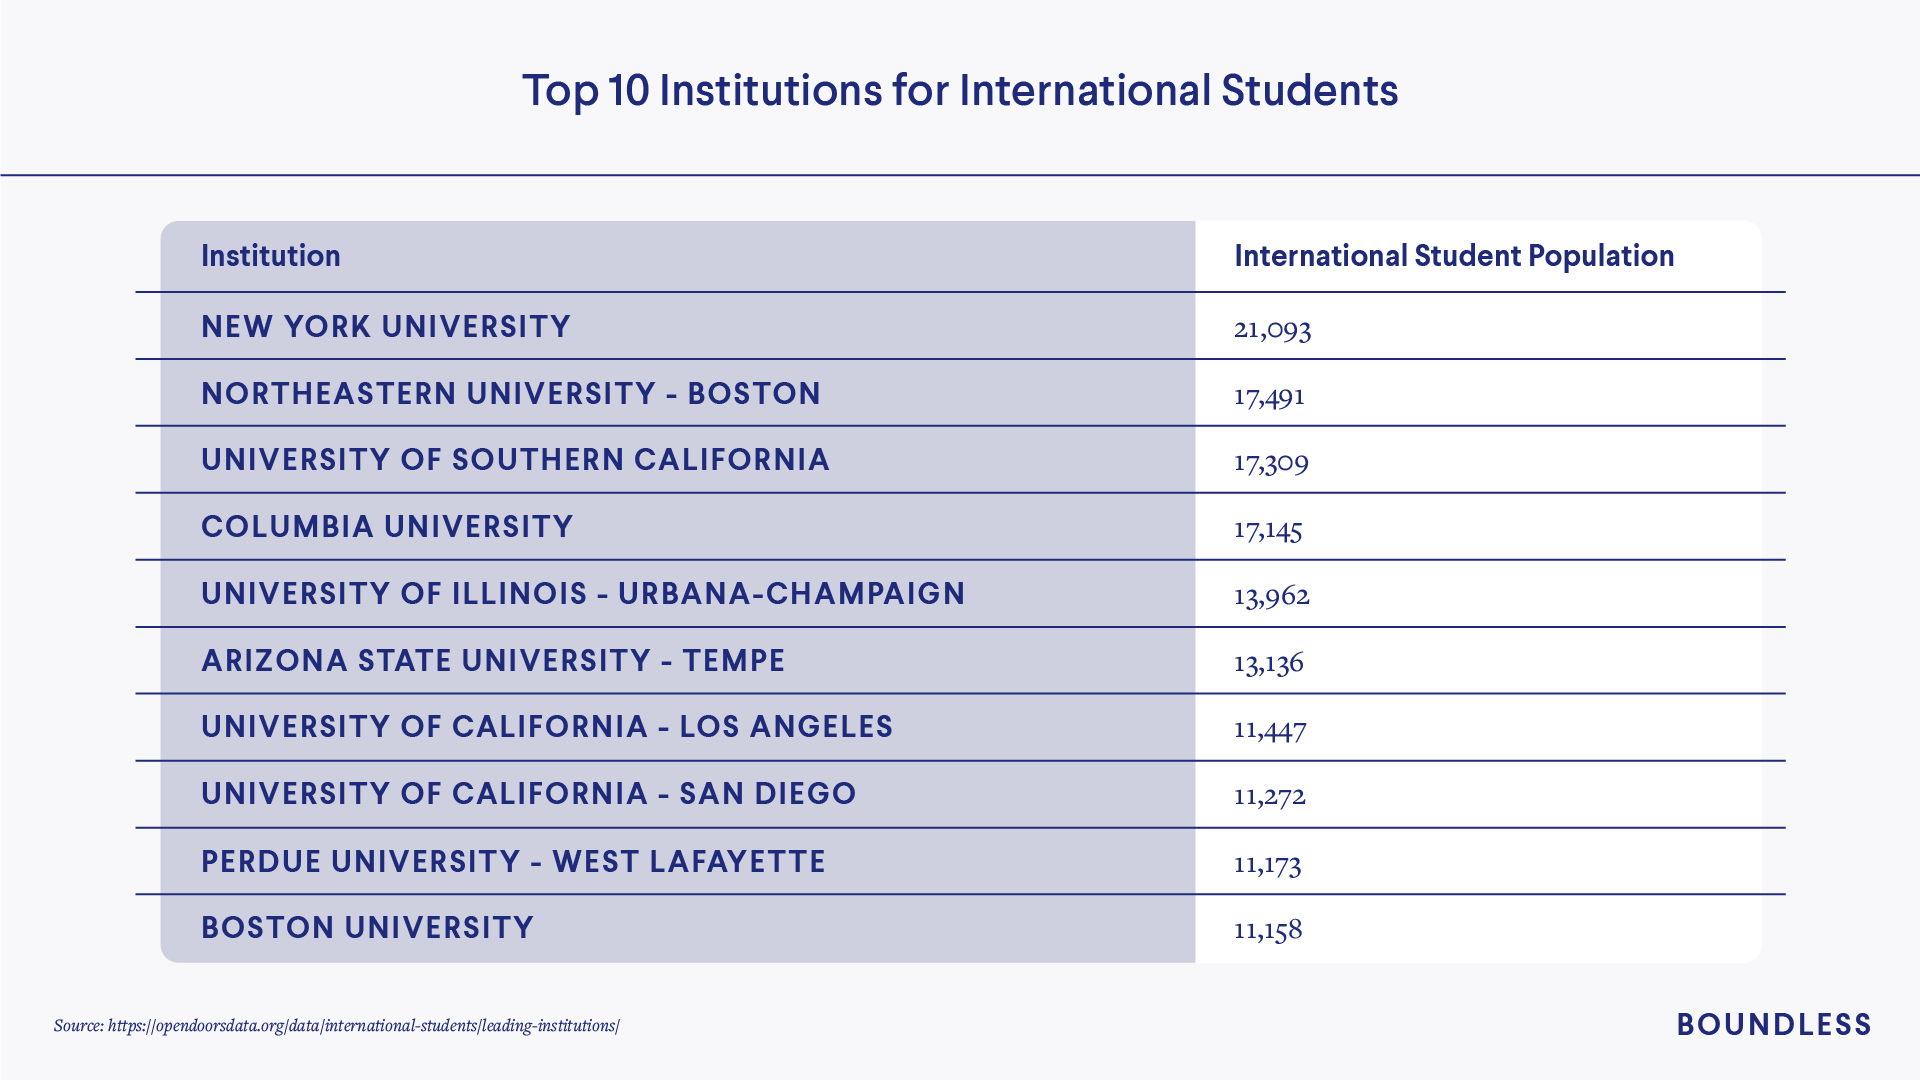 Top institutions for U.S. international students